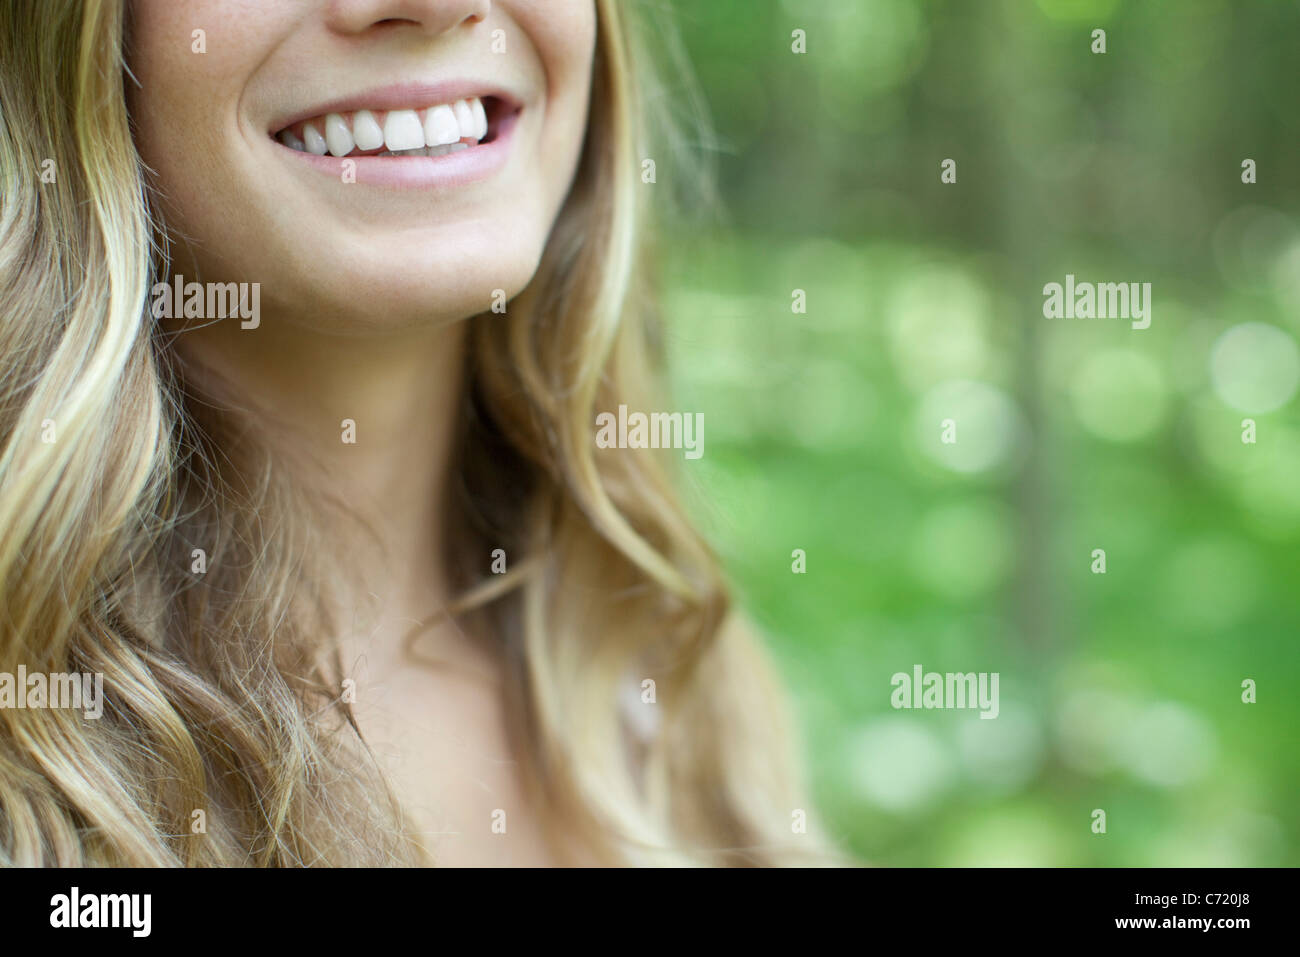 Young woman with toothy smile, cropped - Stock Image